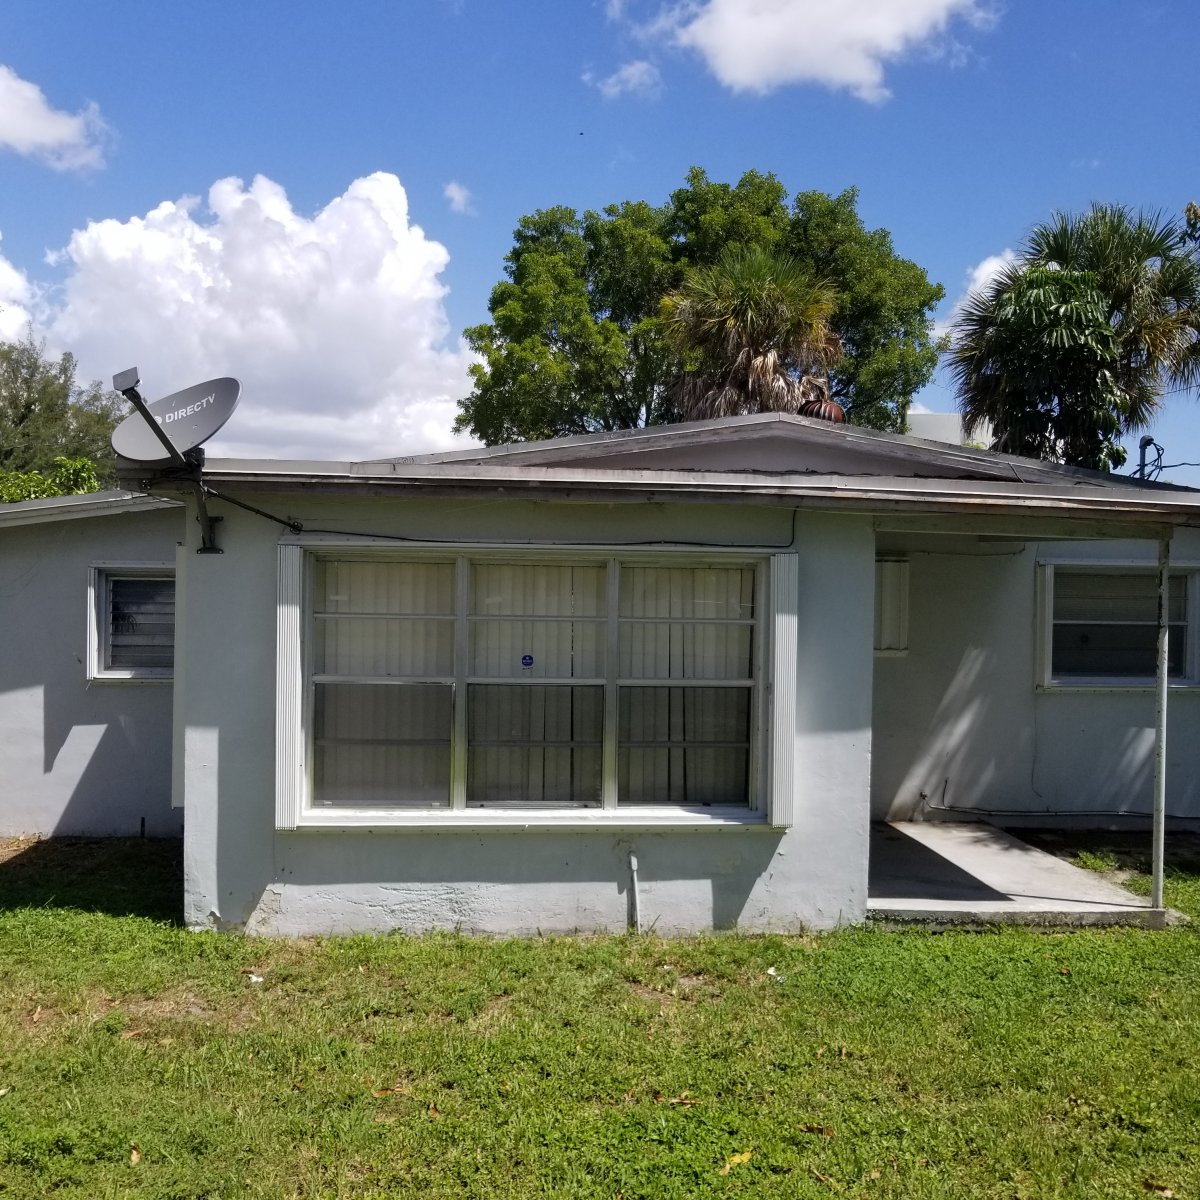 3860 NW 8TH PL, FORT LAUDERDALE, FL 33311 - IRG Corporation